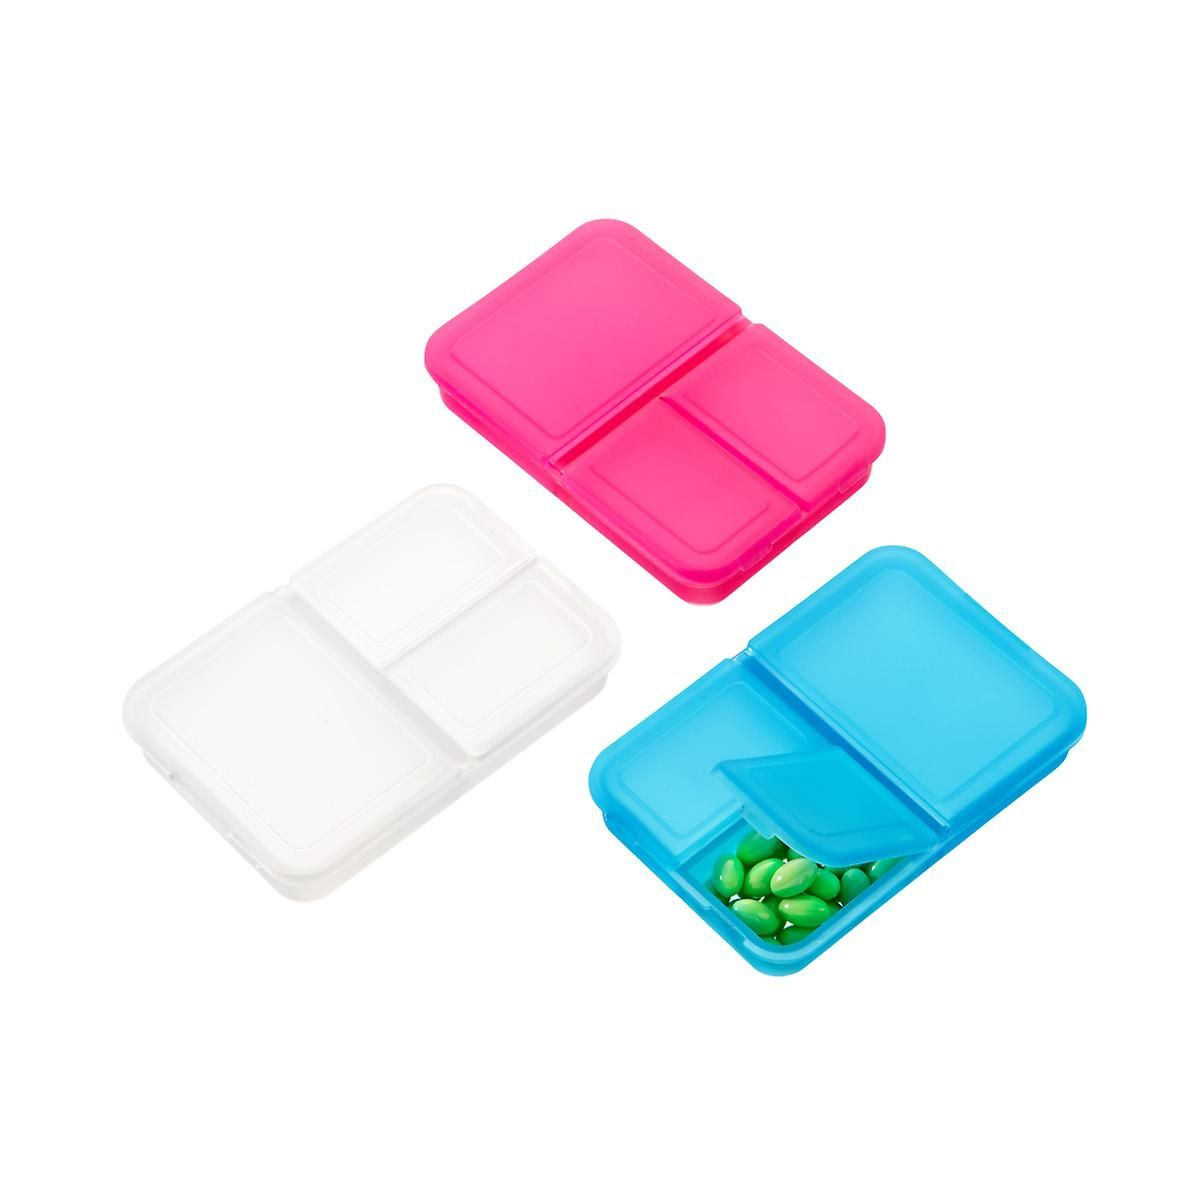 3 Section Rectangle Pill Box Pill Boxes Pill Organizer Travel Pill Container